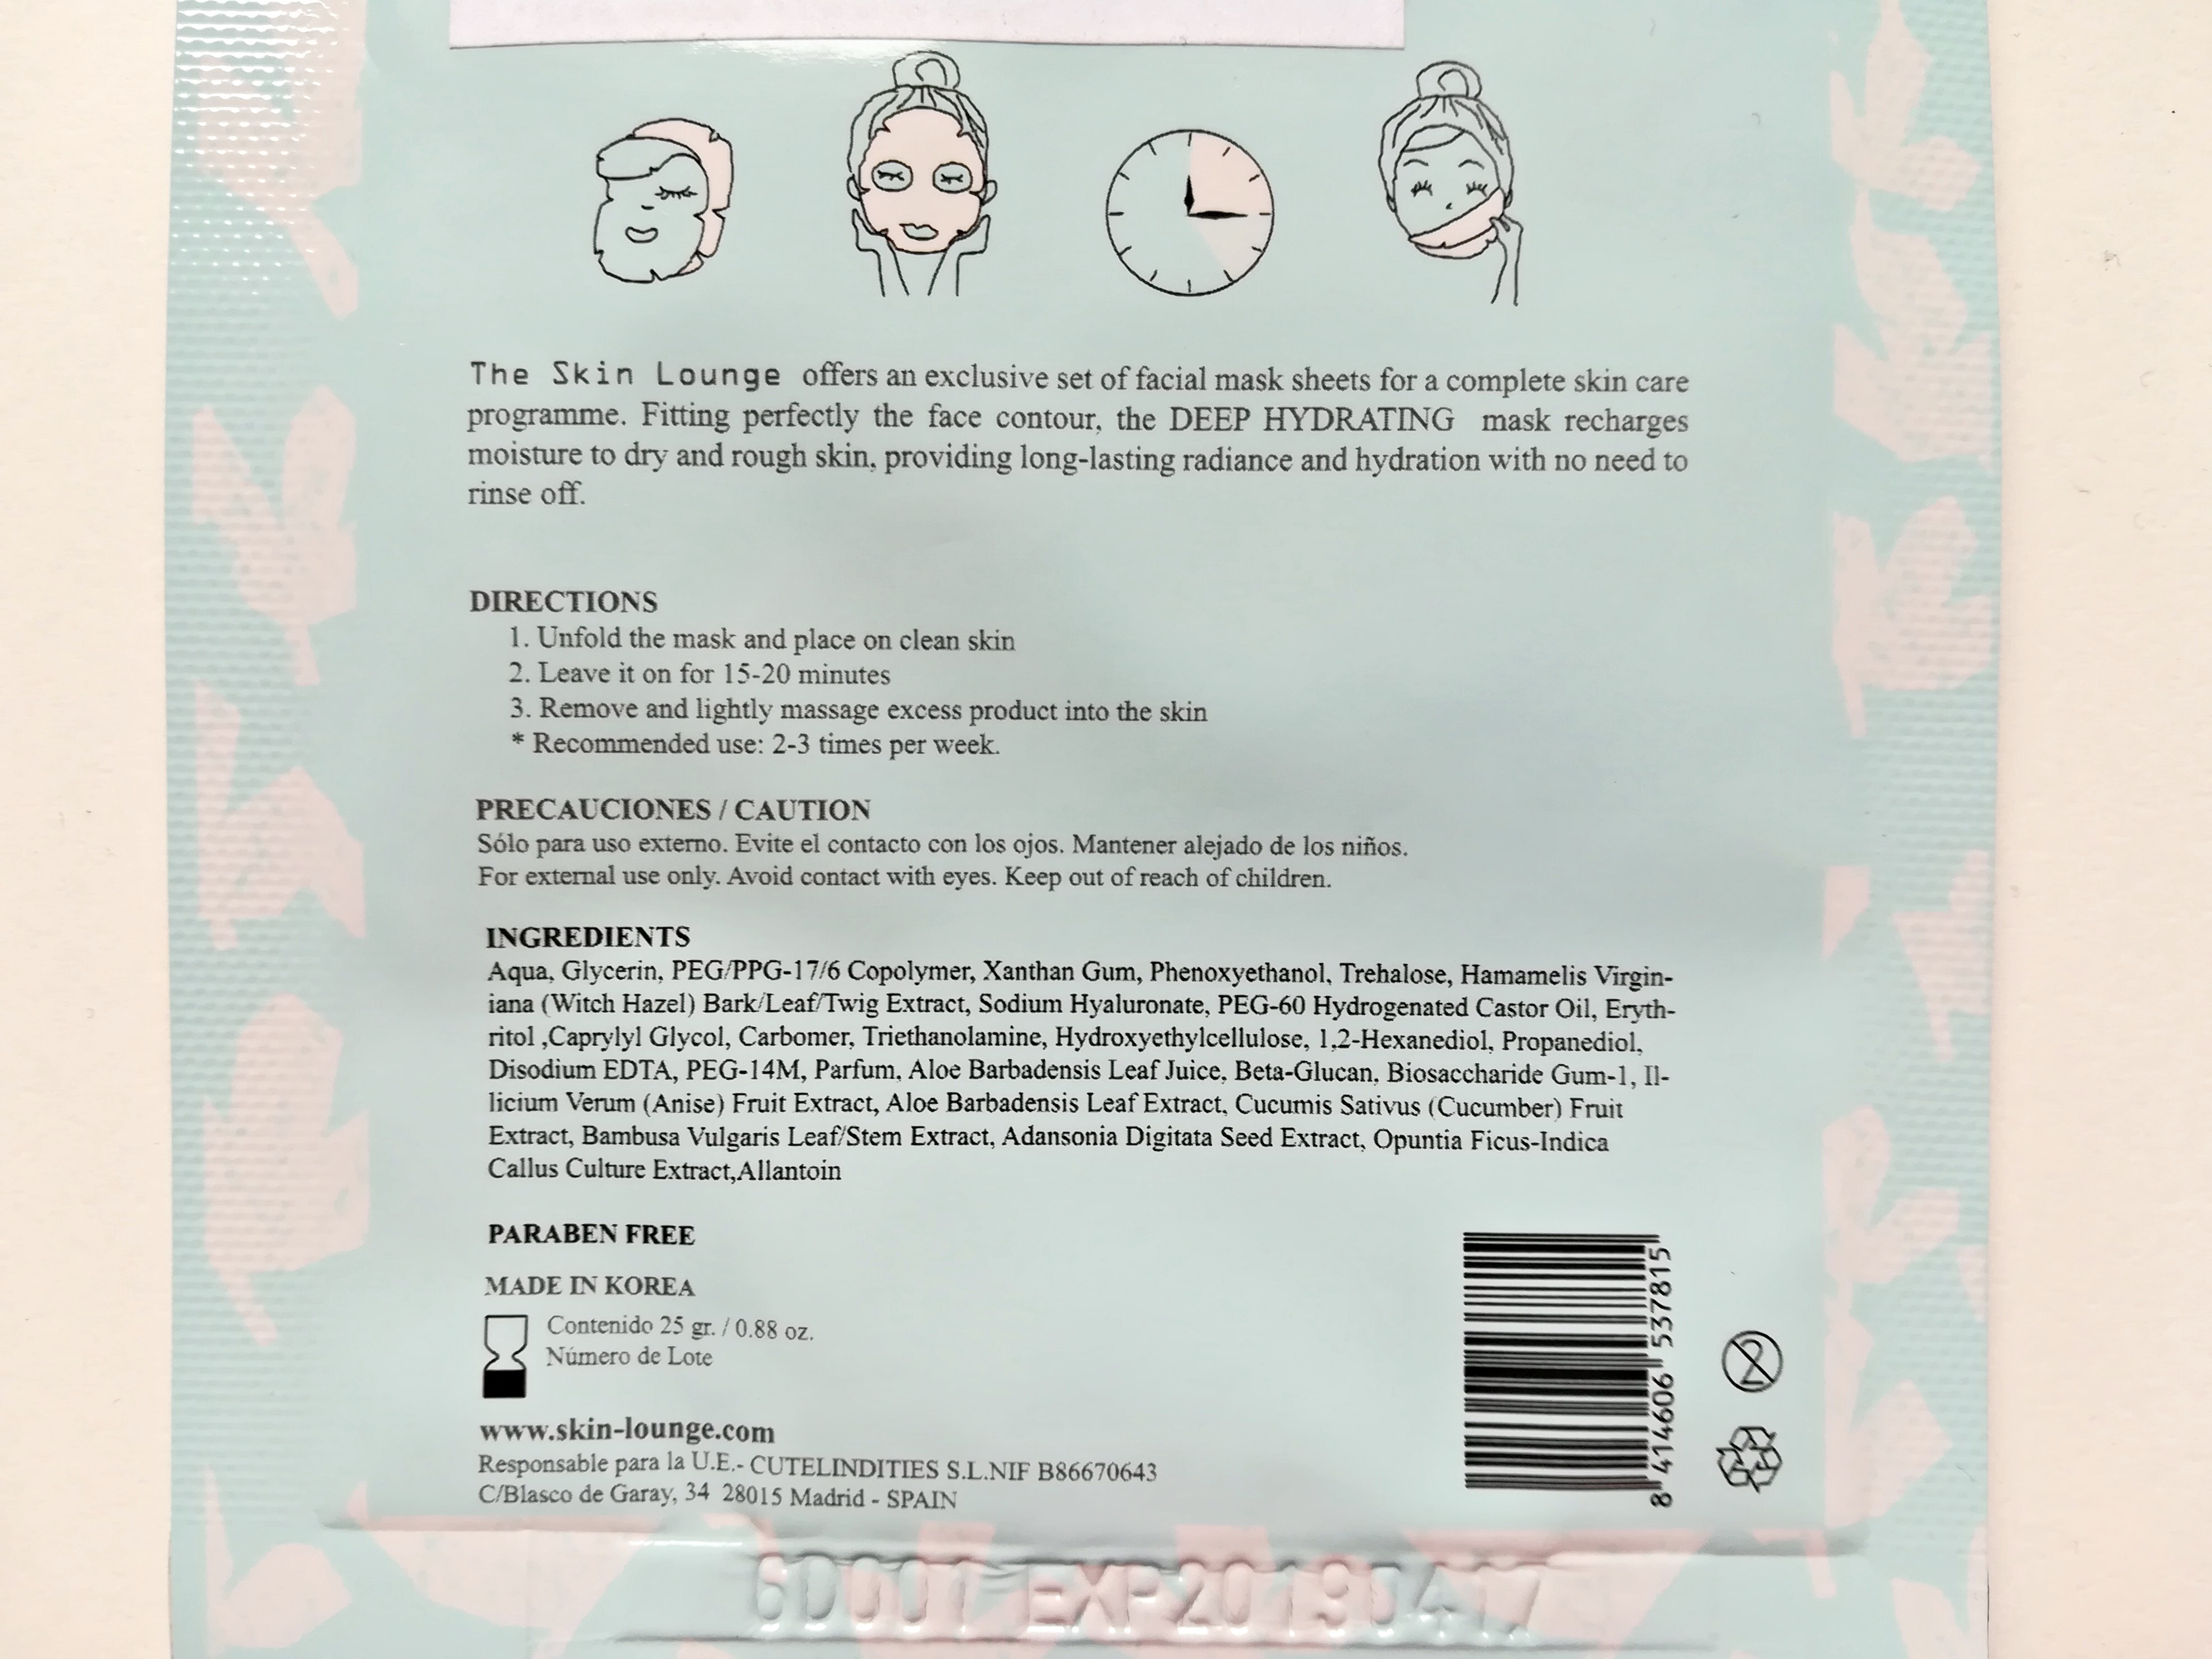 The Skin Lounge Deep Hydrating Facial Mask inci, SanniiJuliaa